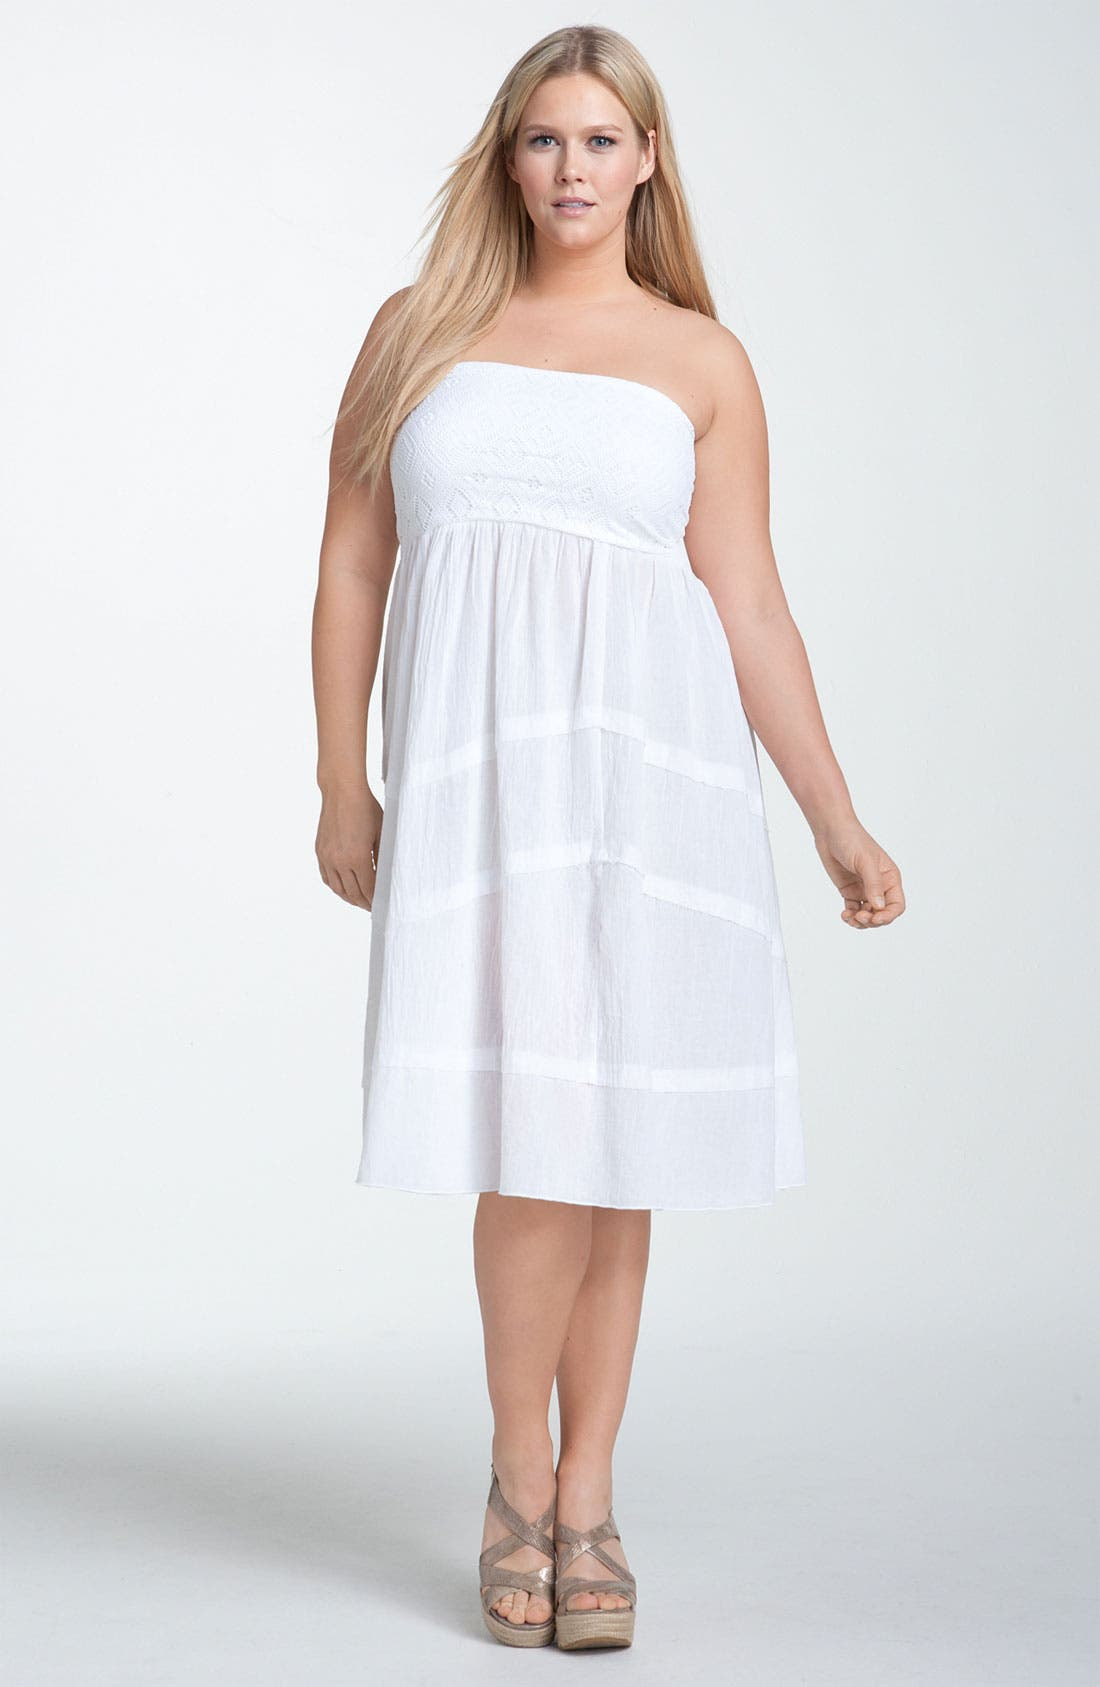 Alternate Image 1 Selected - Becca 'Lighten Up' Convertible Cover-Up Dress (Plus)